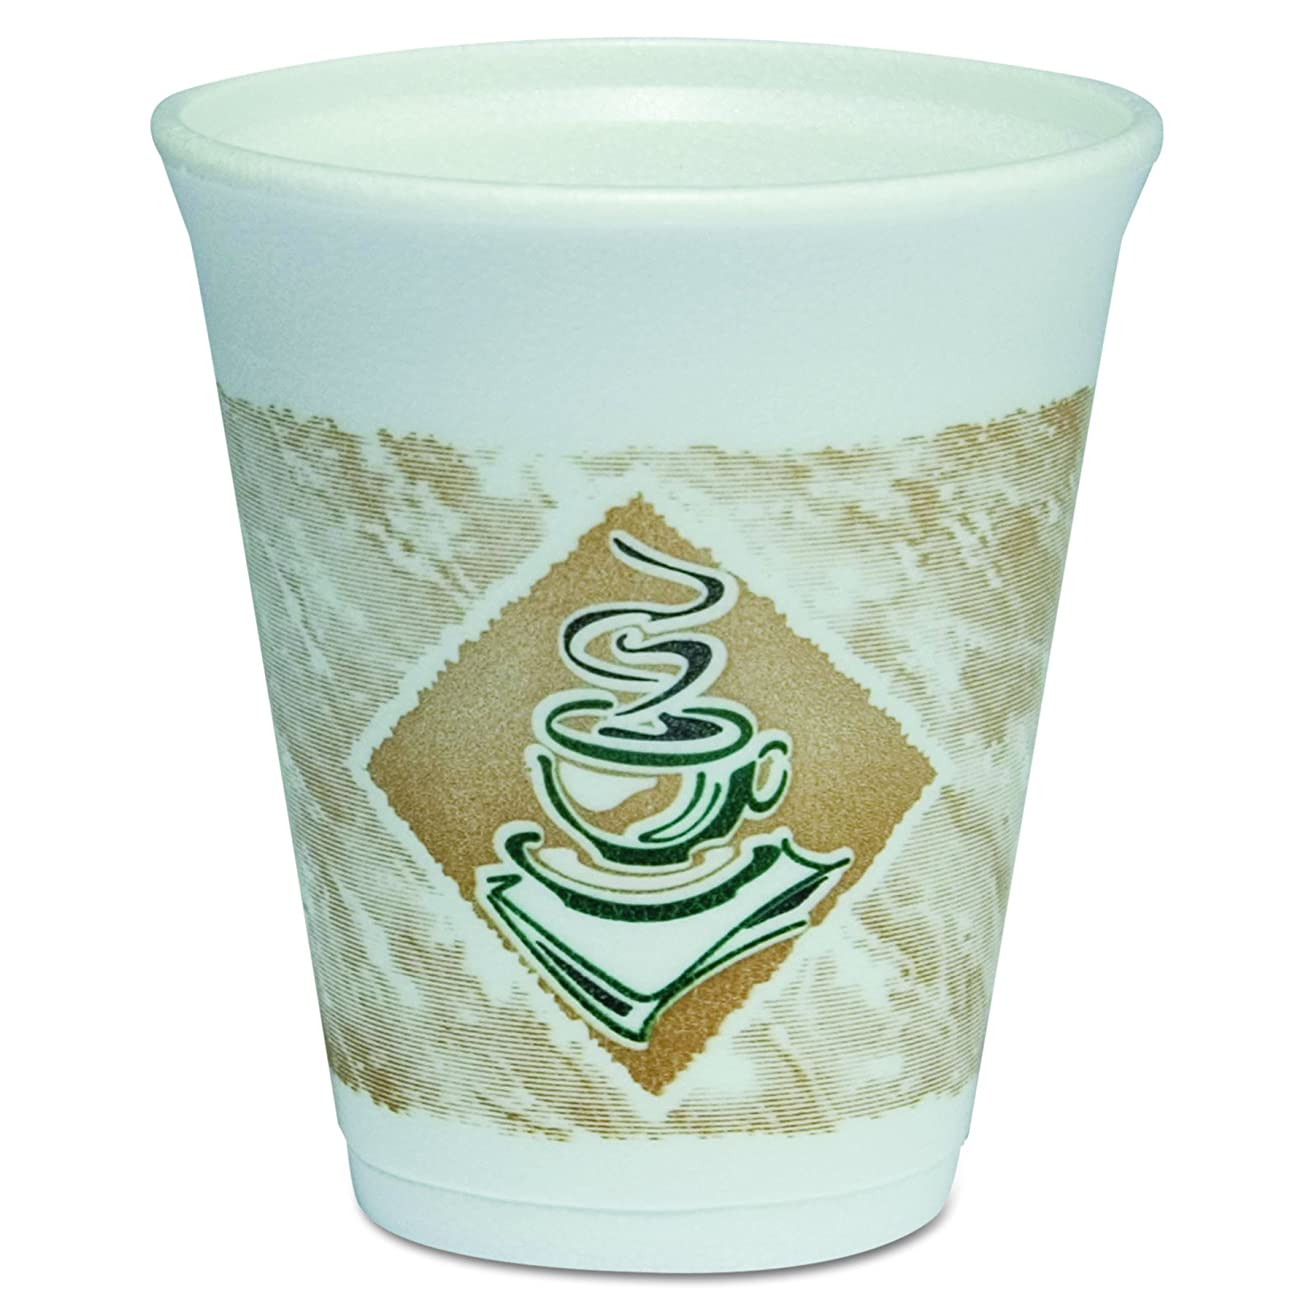 Dart 8X8G Café G Foam Hot/Cold Cups, 8oz, White w/Brown & Green (Case of 1000)